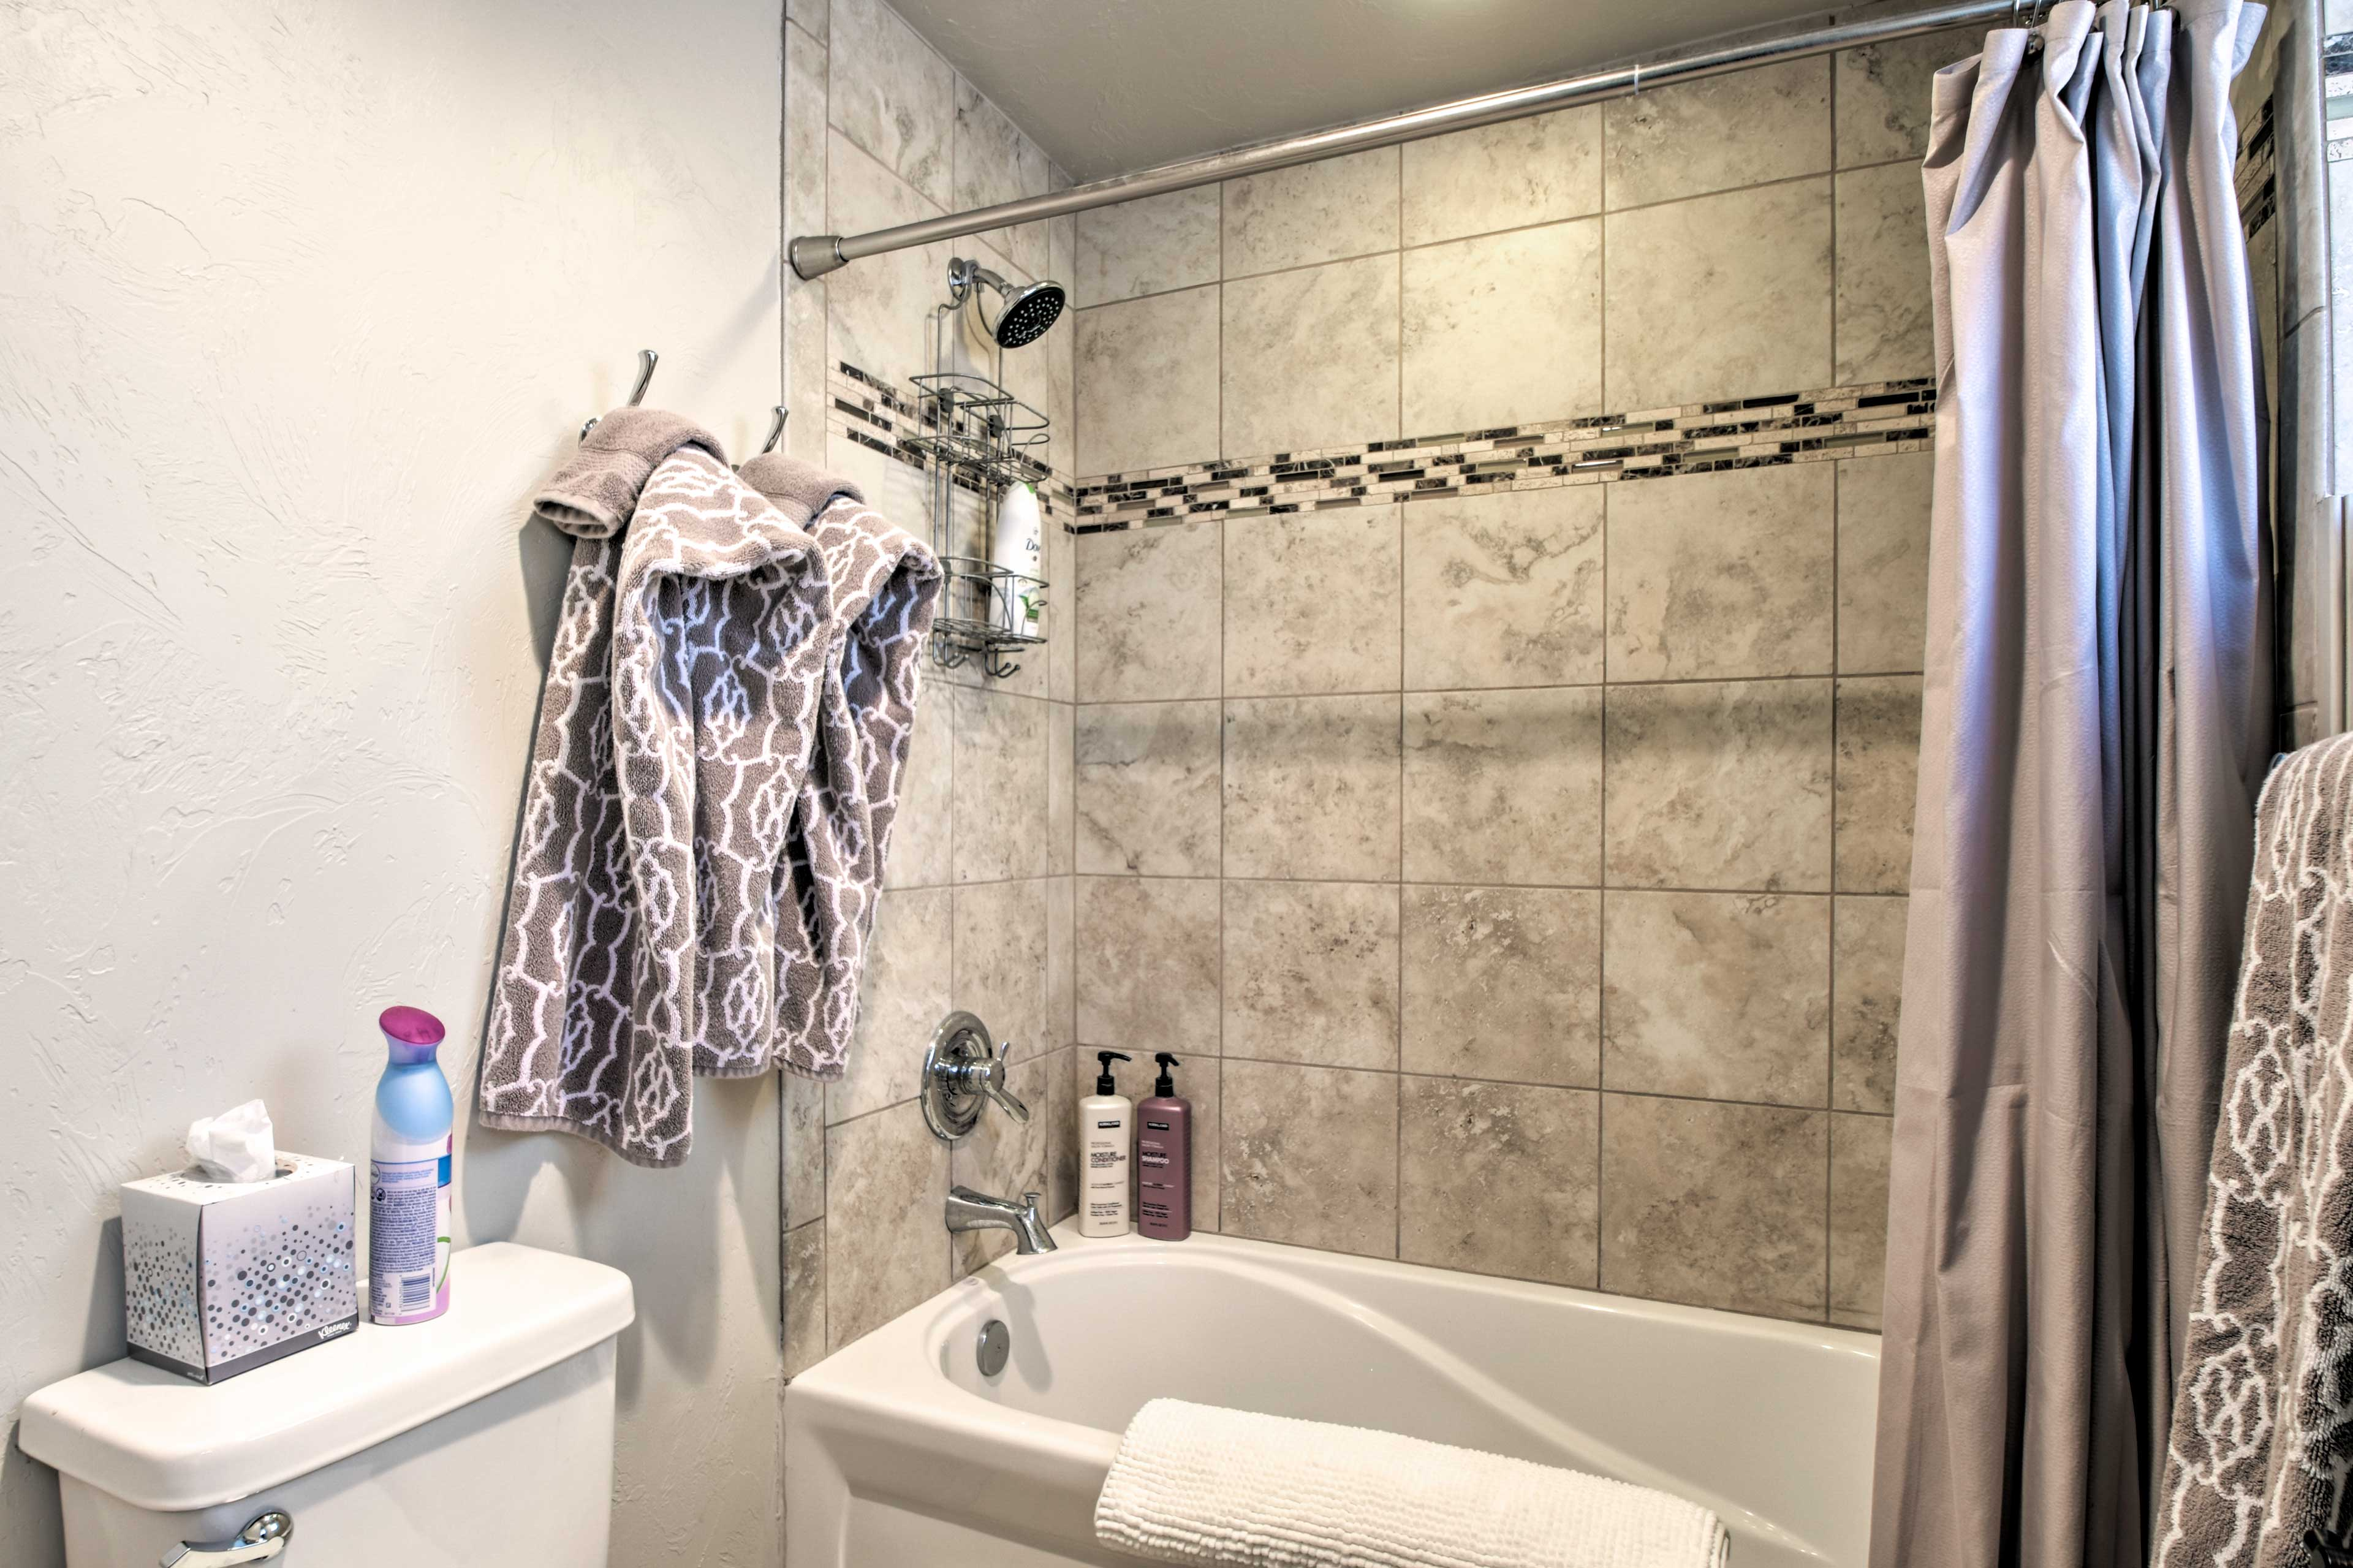 The tiled shower/tub combo completes the bathroom.